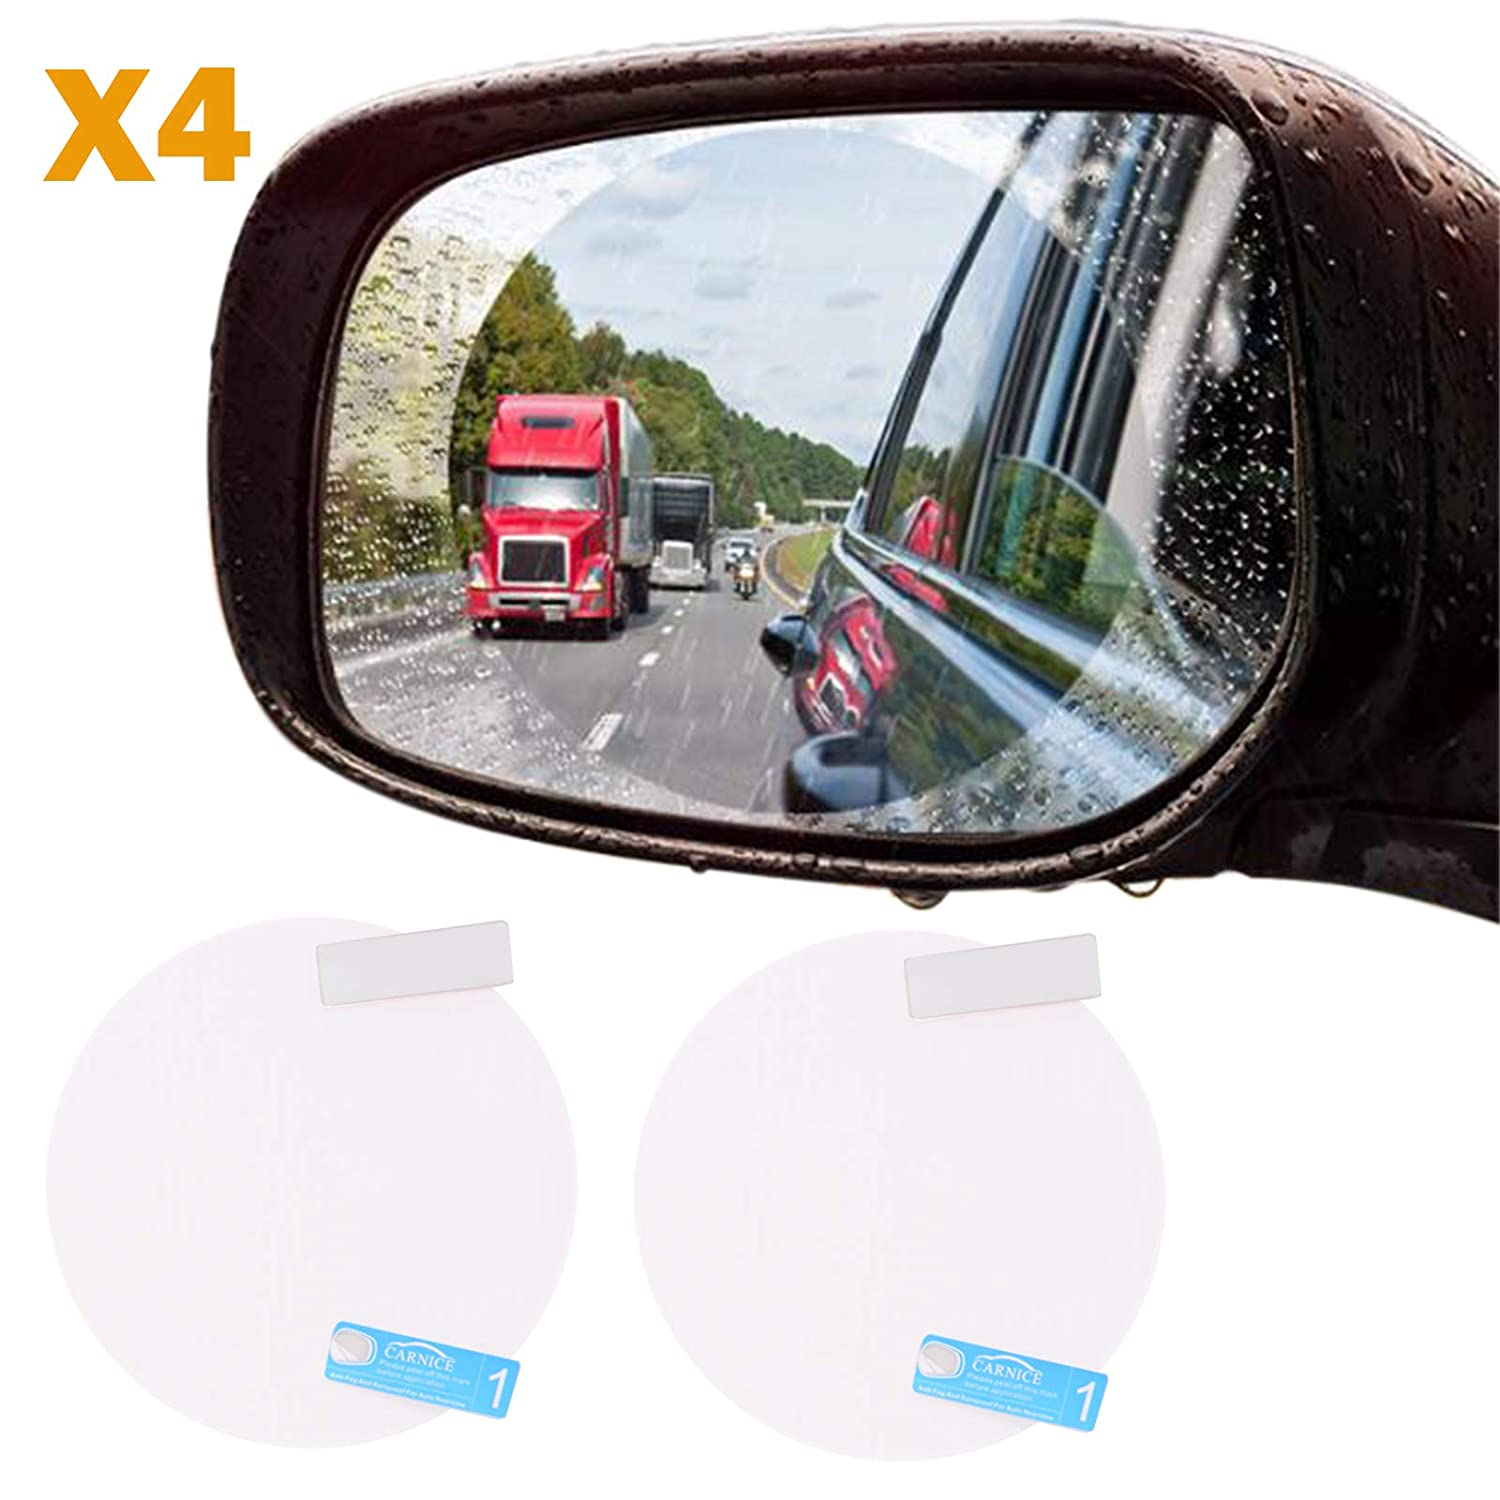 Voilamart Car Truck SUV Rearview Mirror Rainproof Film, 4Pcs HD Clear Screen Waterproof Protective Film, Anti-Fog Anti Scratch Round Soft Film - Round